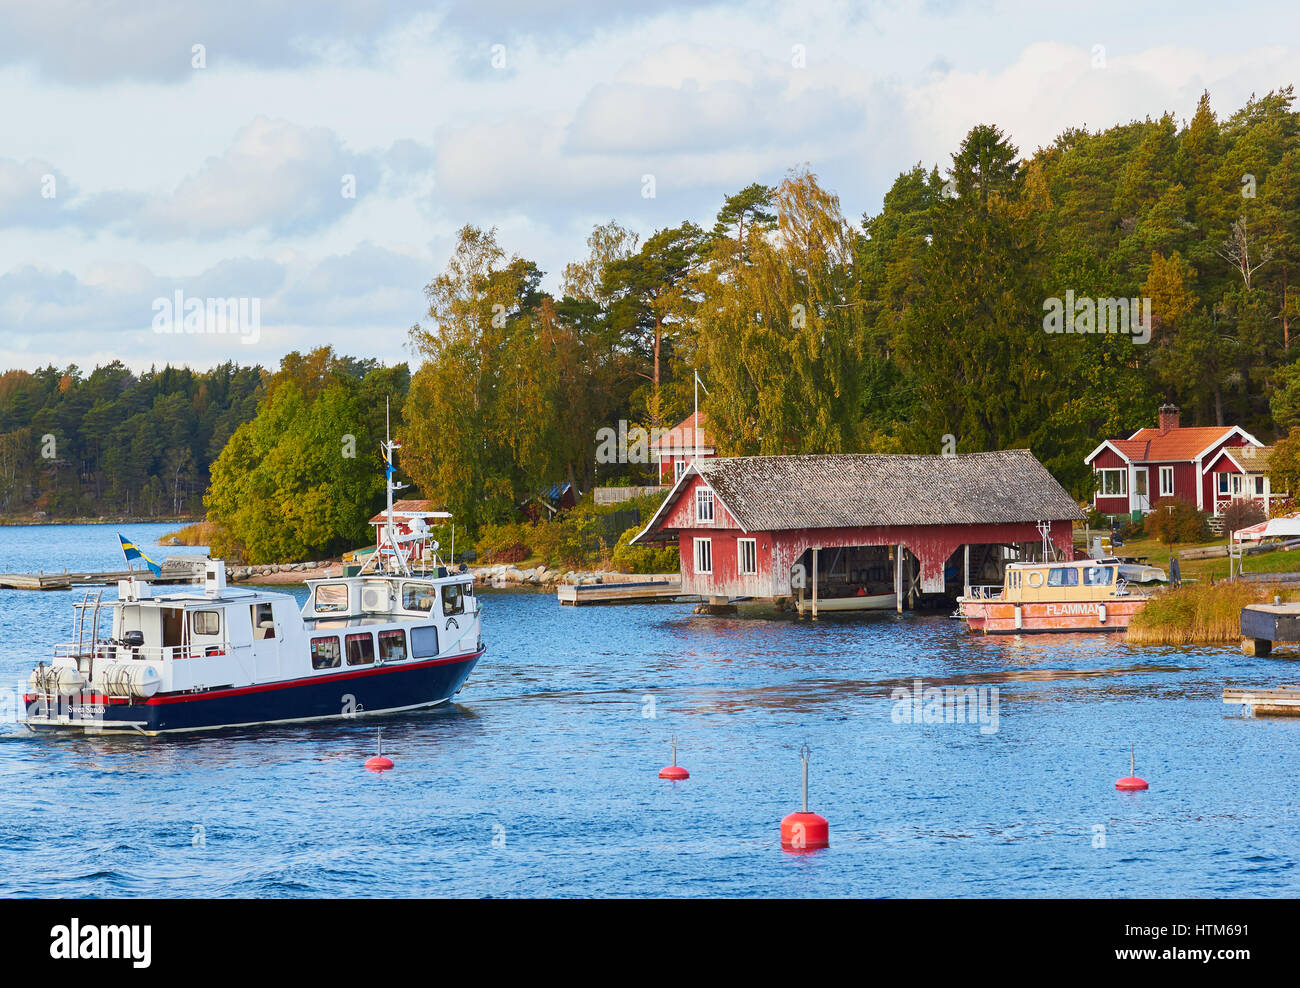 Island community in the Stockholm archipelago, Sweden, Scandinavia - Stock Image